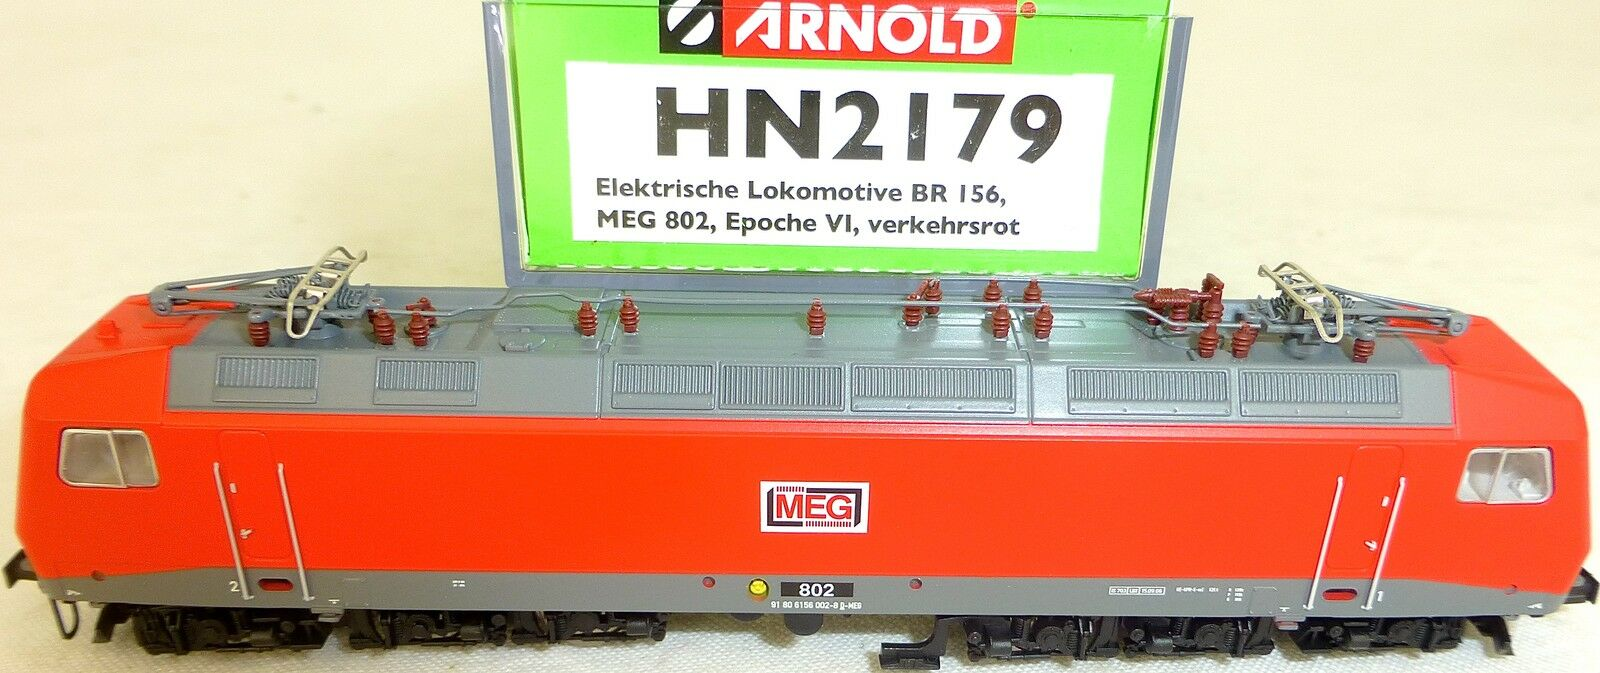 Meg 802 ELOK BR 156 Traffic Red EP6 Arnold HN2179 N 1 160 NEW HS2 µ